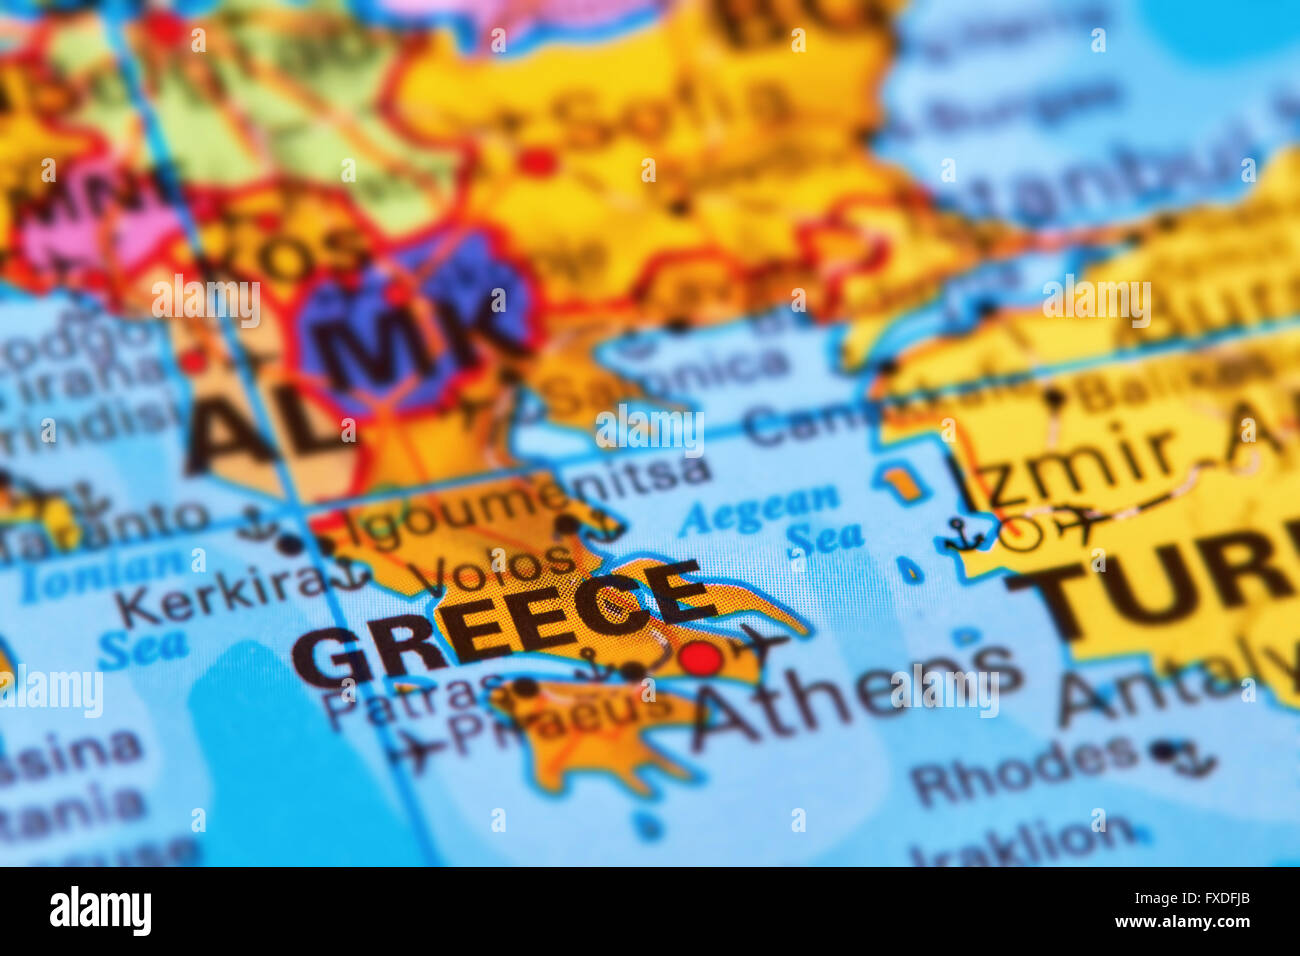 Country Of Greece Map.Greece Country In Europe On The World Map Stock Photo 102330547